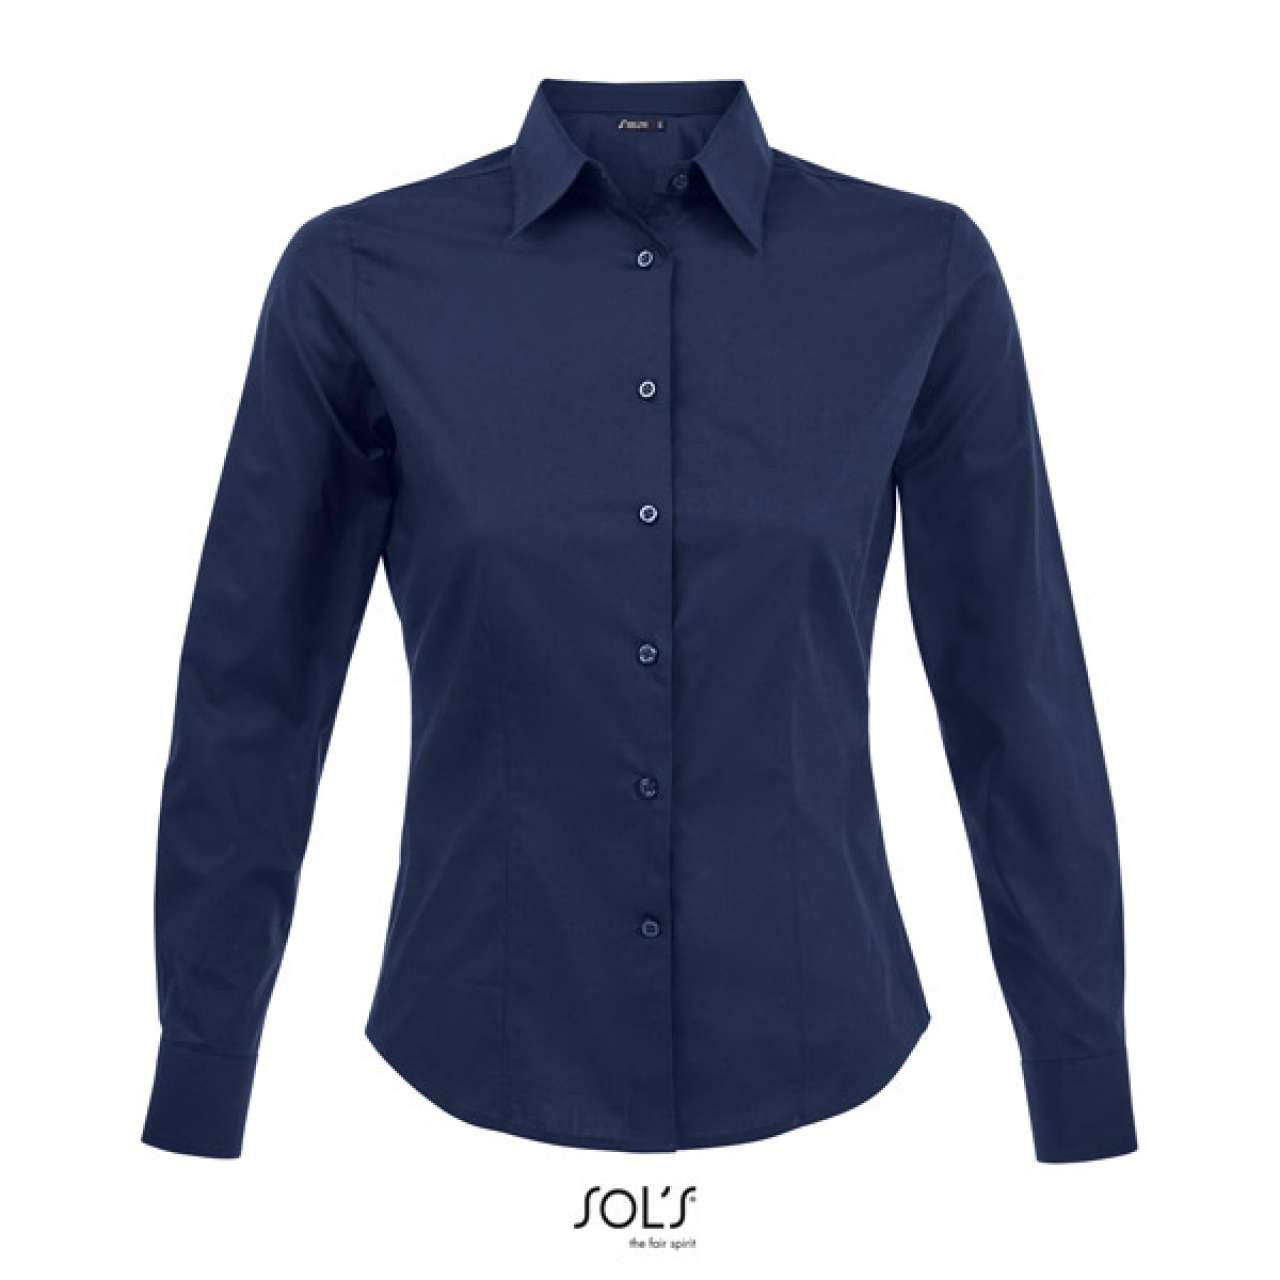 SOL'S EDEN - LONG SLEEVE STRETCH WOMEN'S SHIRT